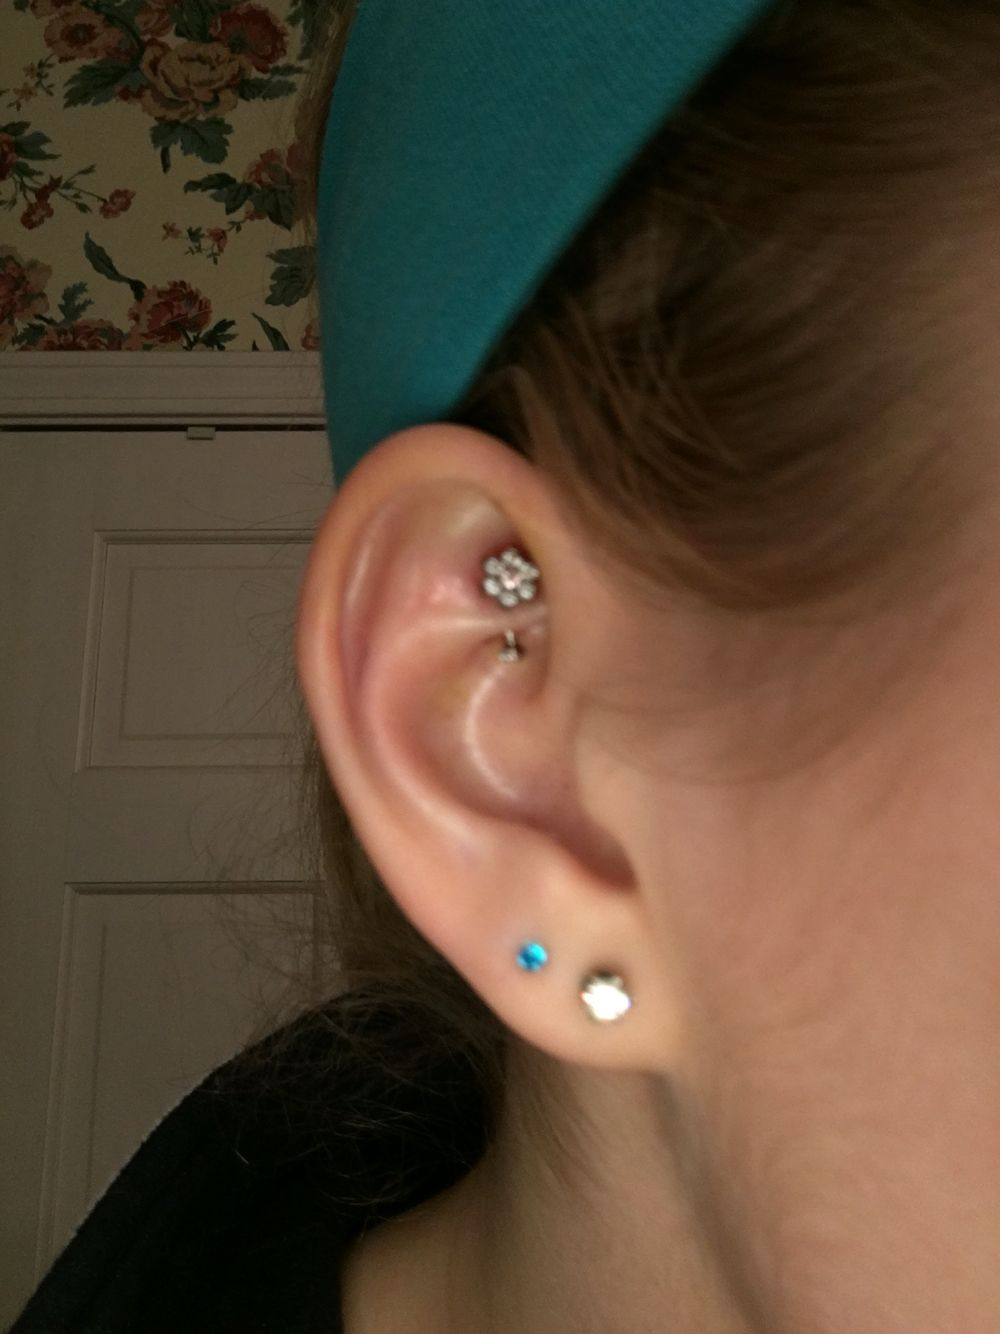 My New Rook Piercing This One Was Painful After The First Week But Barely Hurt